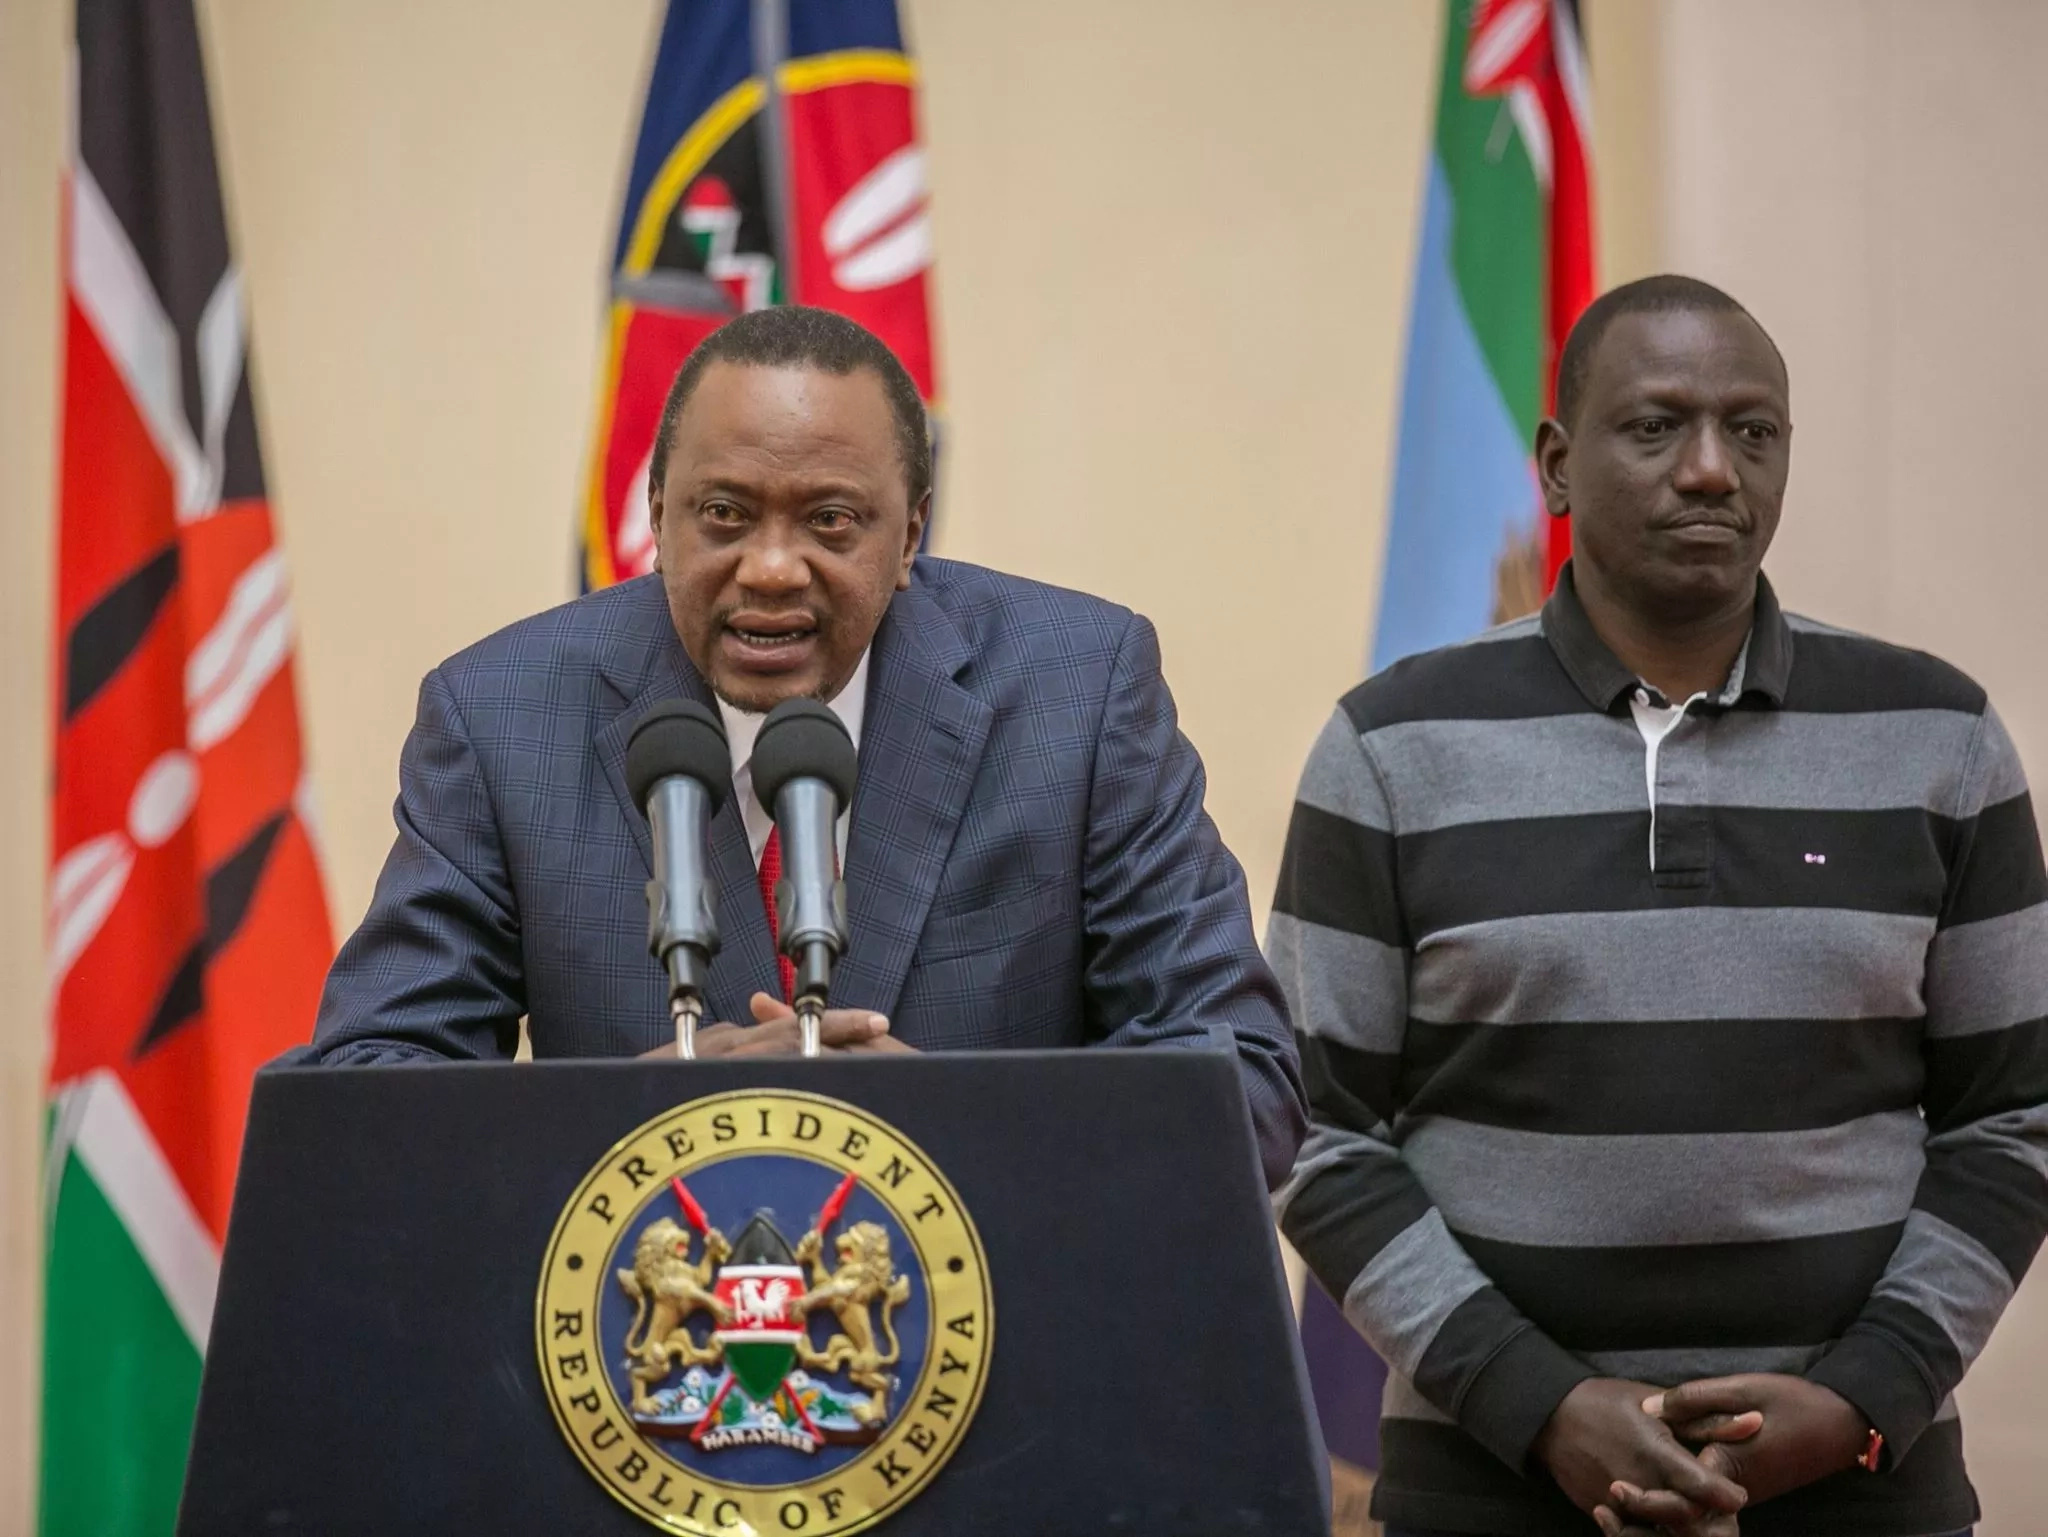 Kenya court nullifies president's win, calls for new vote